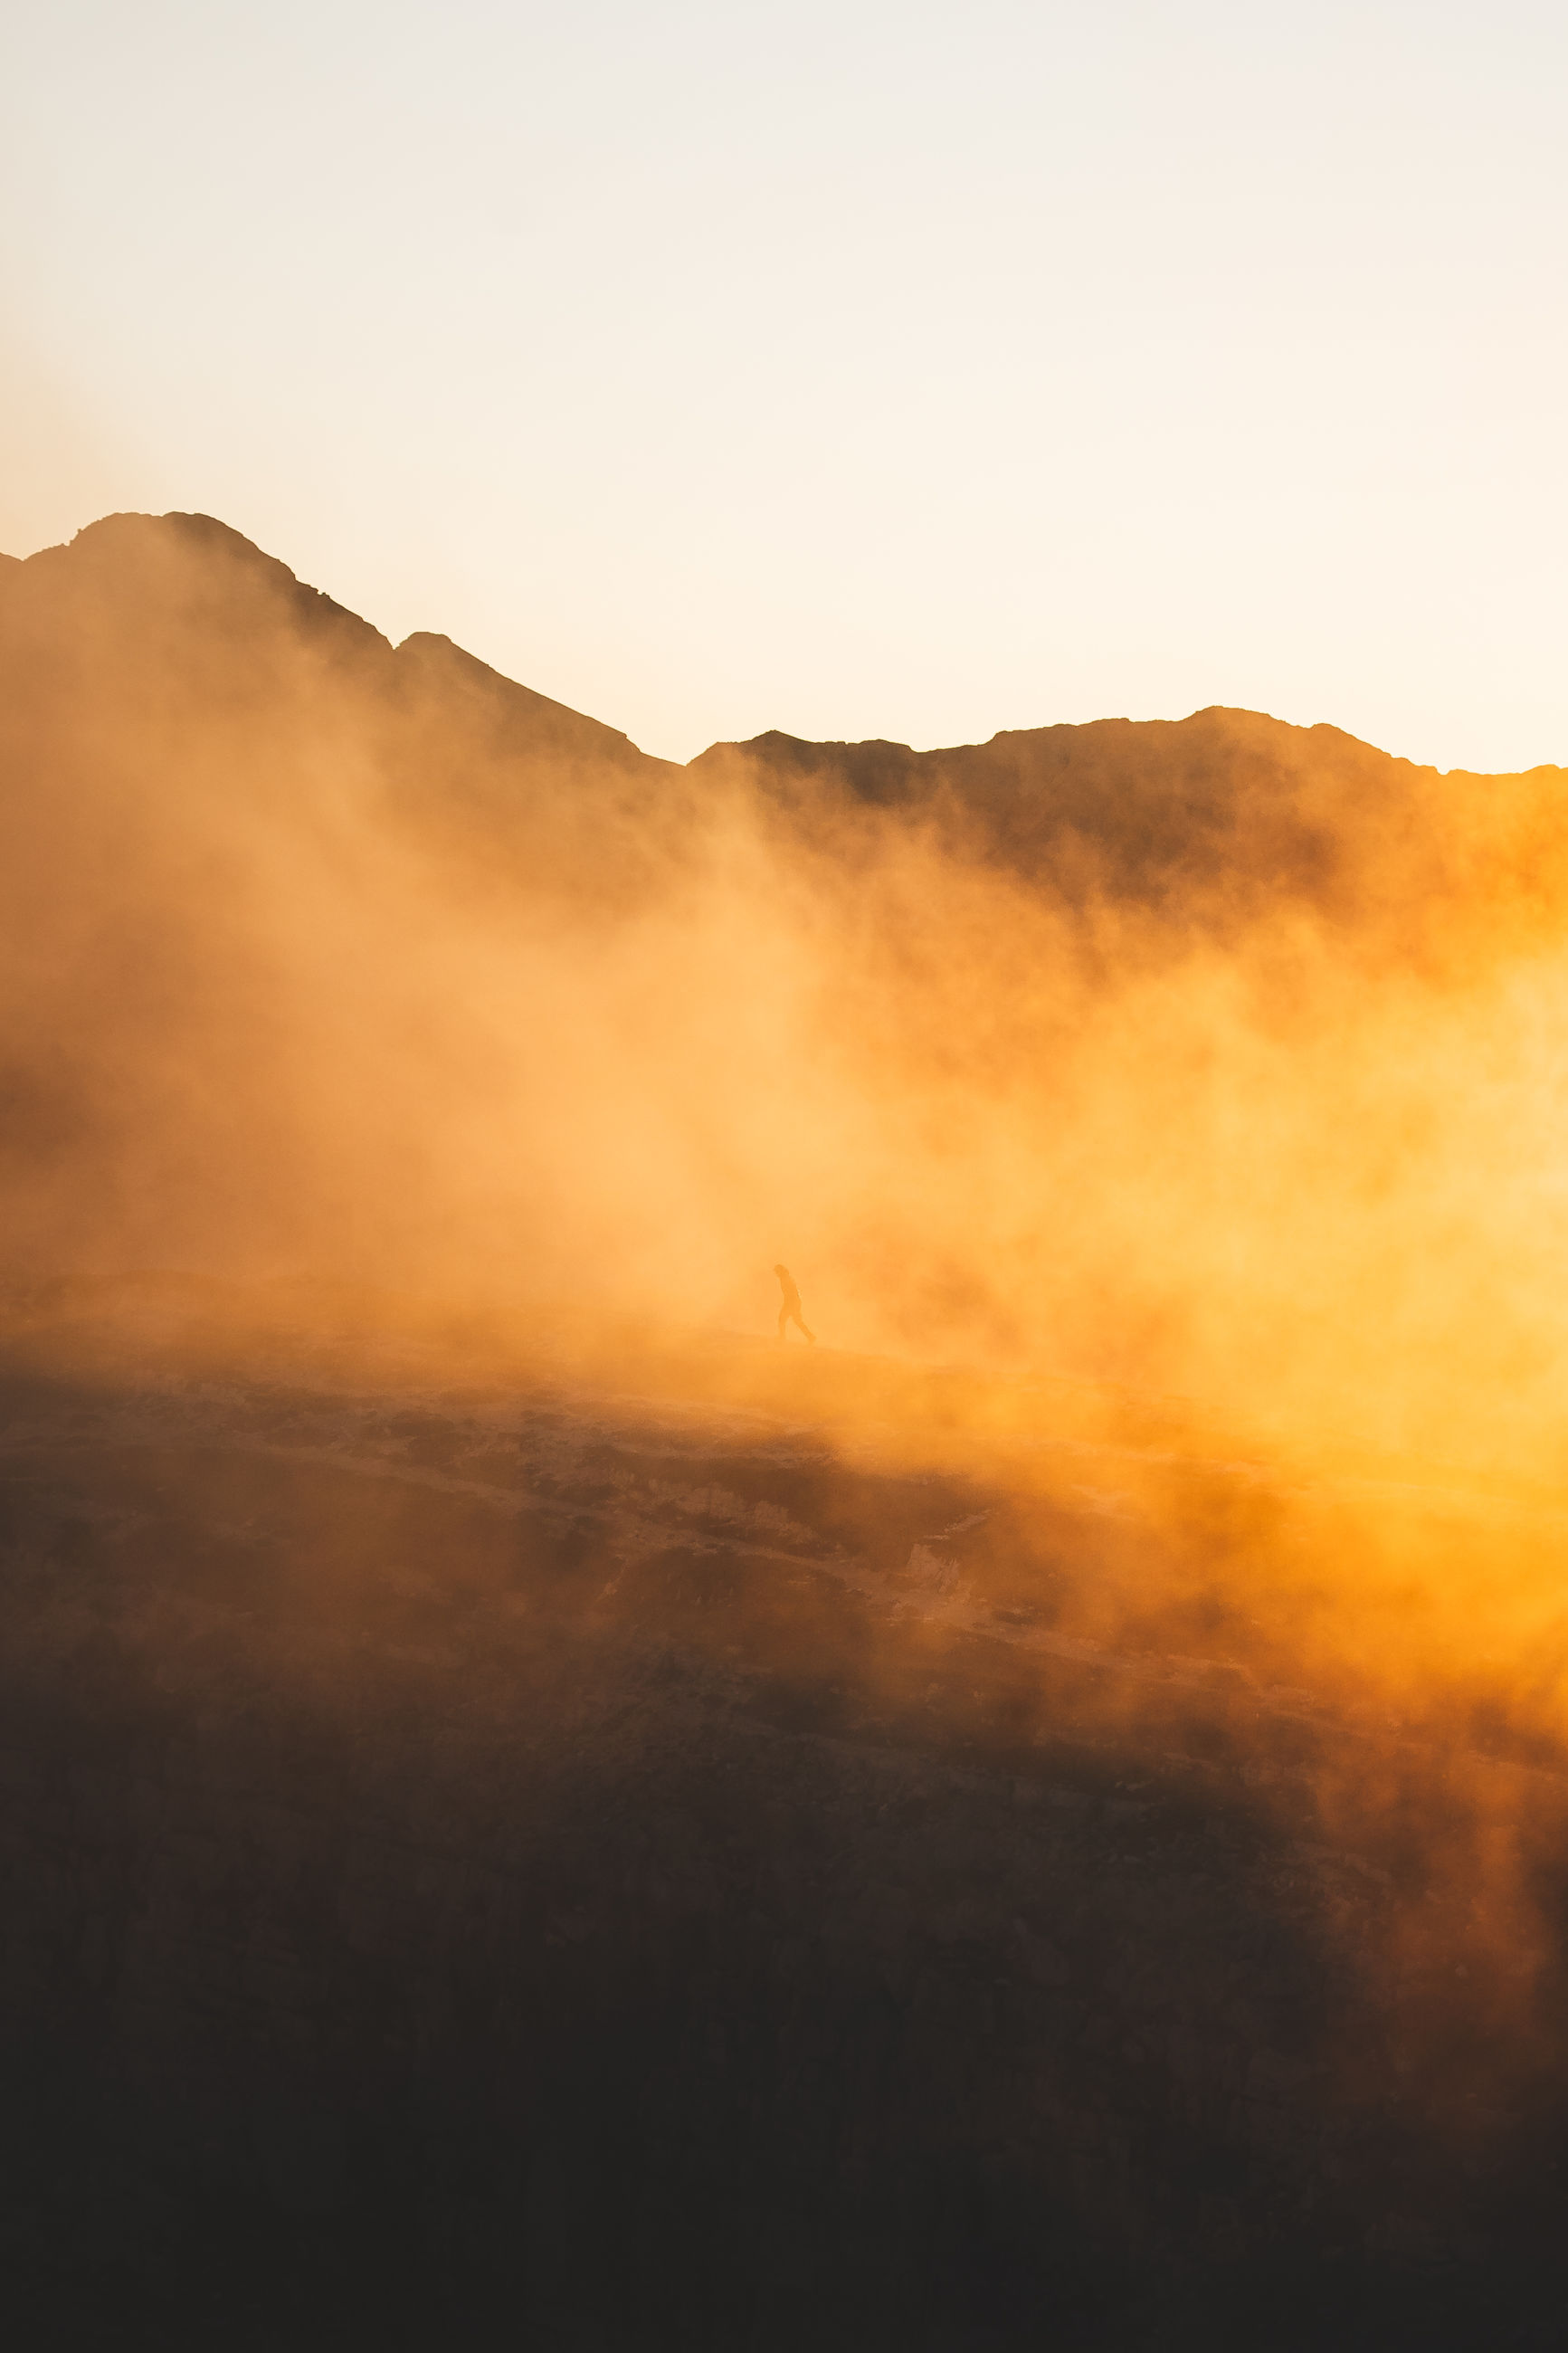 sky, beauty in nature, scenics - nature, orange color, tranquil scene, nature, tranquility, sunset, mountain, silhouette, environment, non-urban scene, idyllic, no people, cloud - sky, landscape, outdoors, copy space, vertebrate, geology